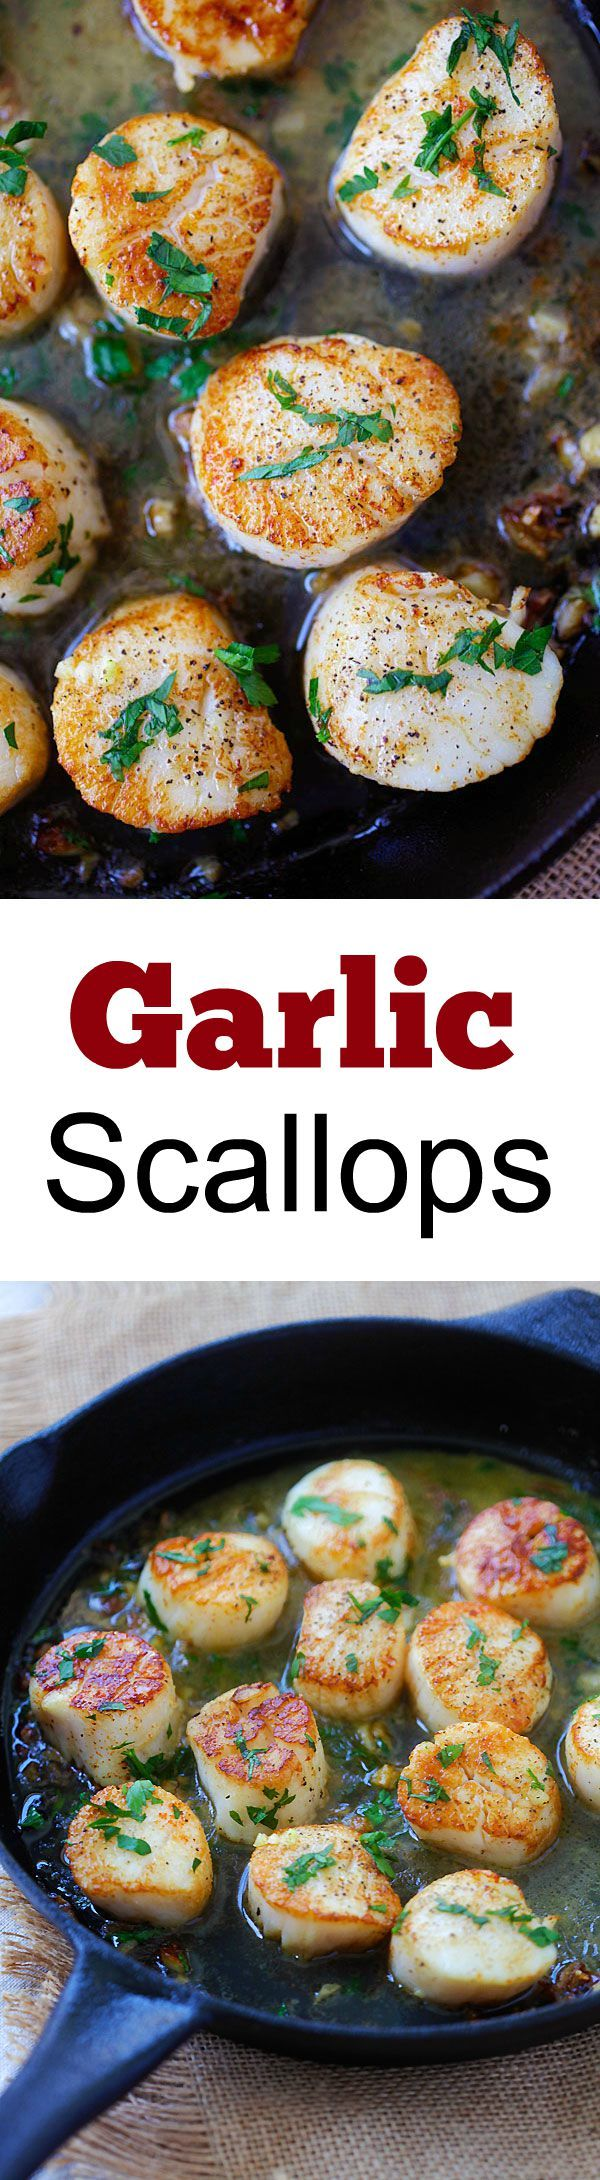 Garlic Scallops - fresh, succulent scallops sauteed with garlic, butter, white wine and parsley. Easy recipe that takes only 15 mins! | rasamalaysia.com